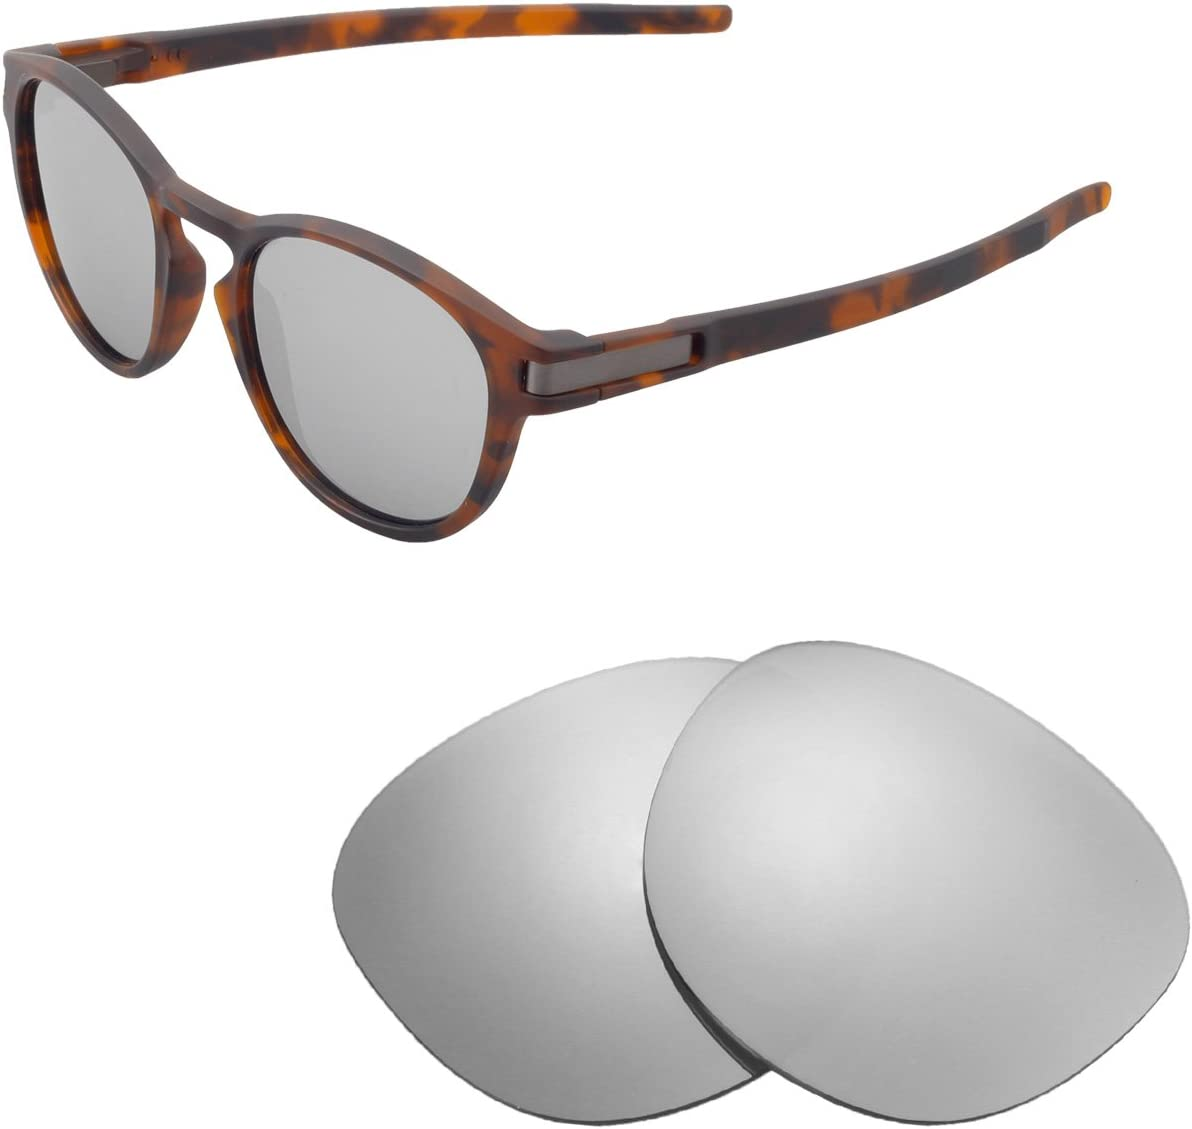 Walleva Replacement Lenses for Oakley Latch Sunglasses - Multiple Options Available